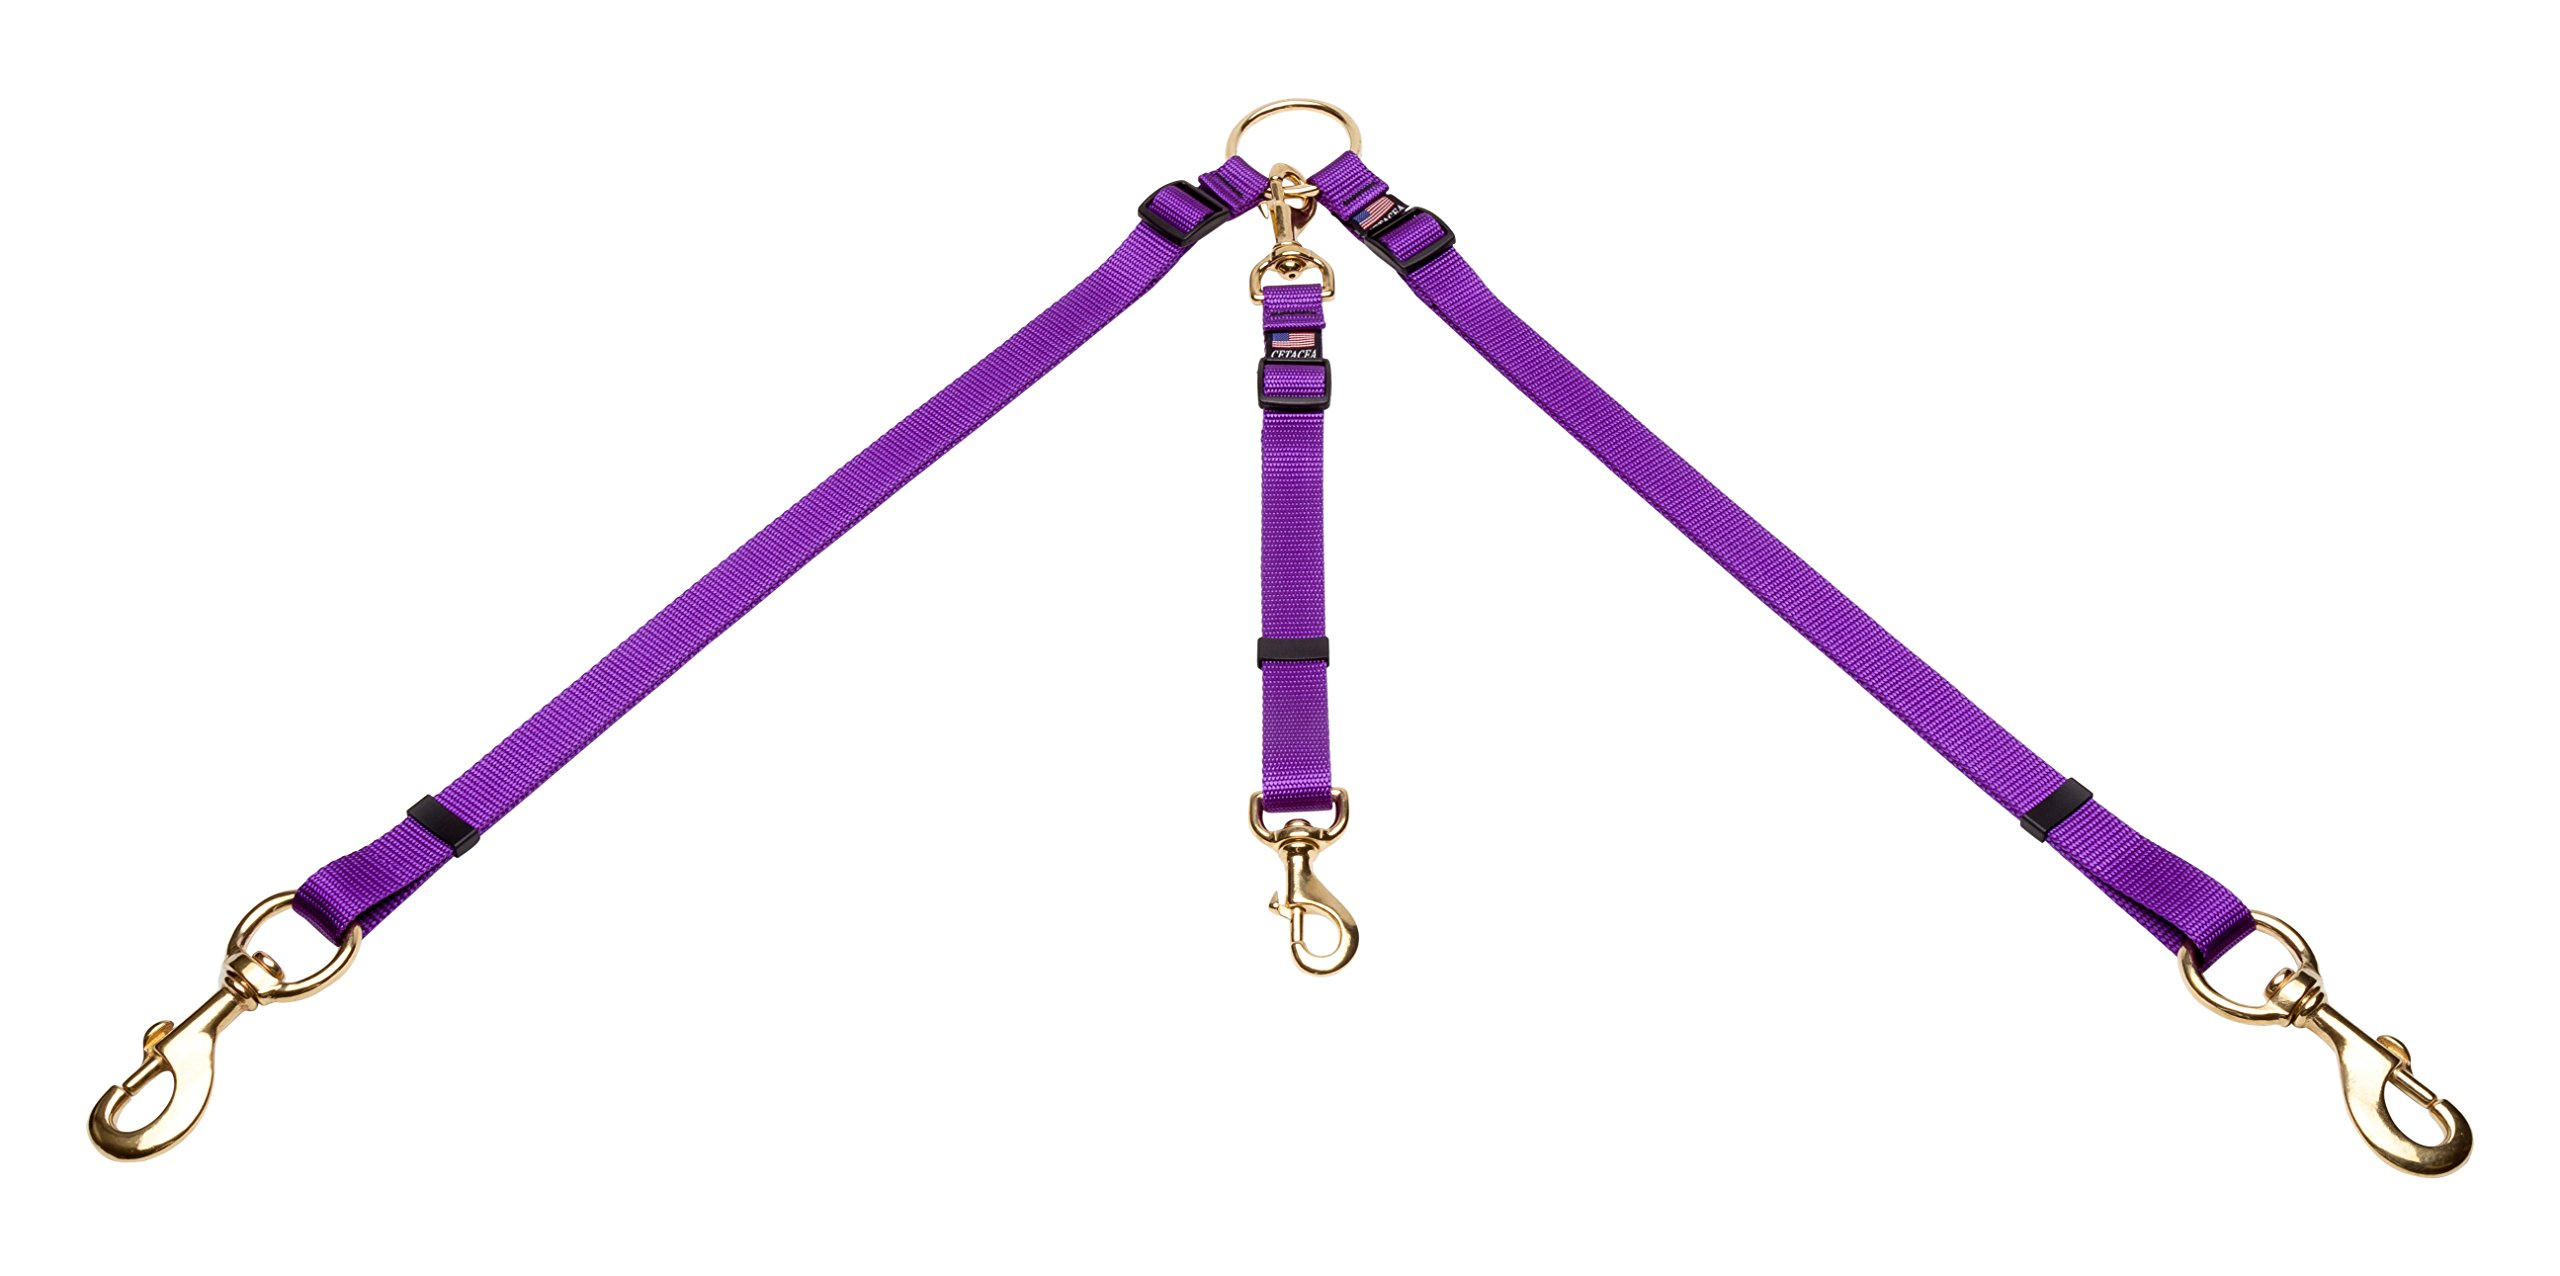 Cetacea Pet Truck Bed Tether, One Size, Purple by Cetacea